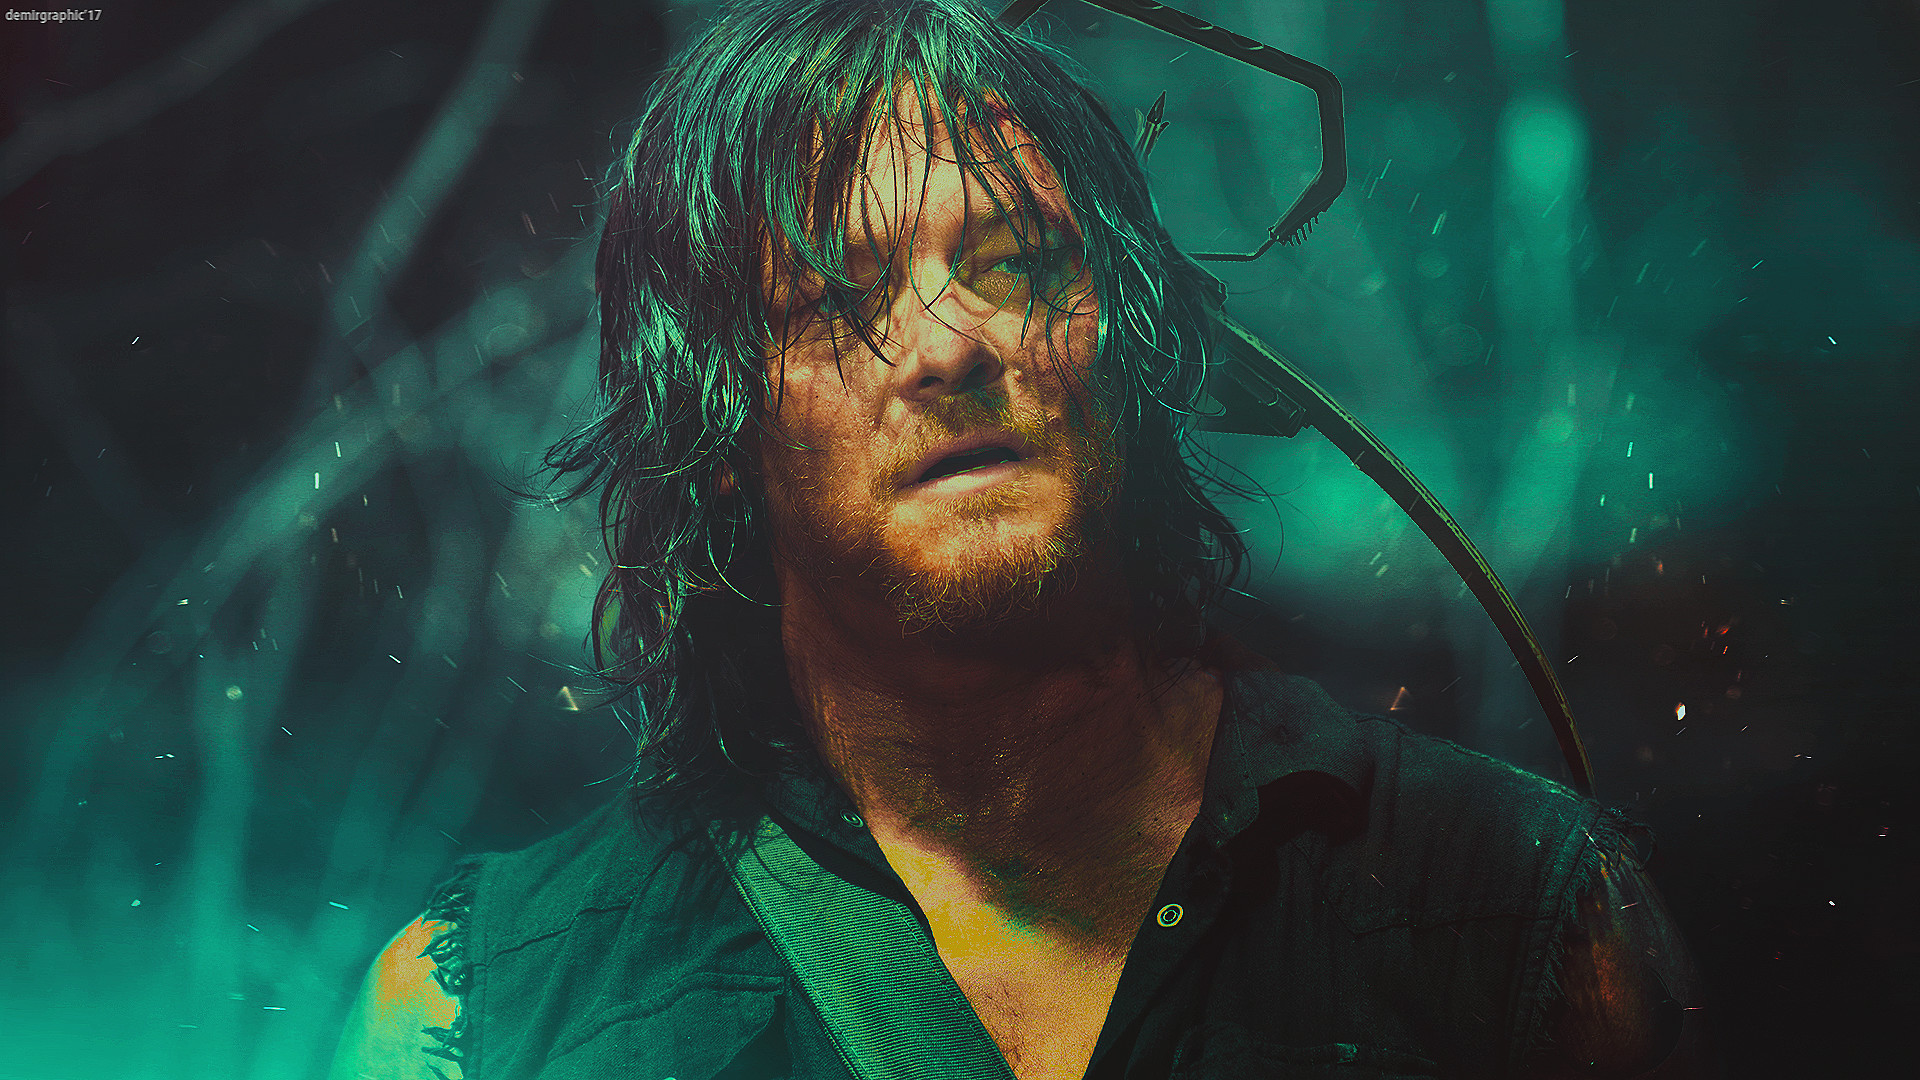 daryl dixon wallpapers 54 images